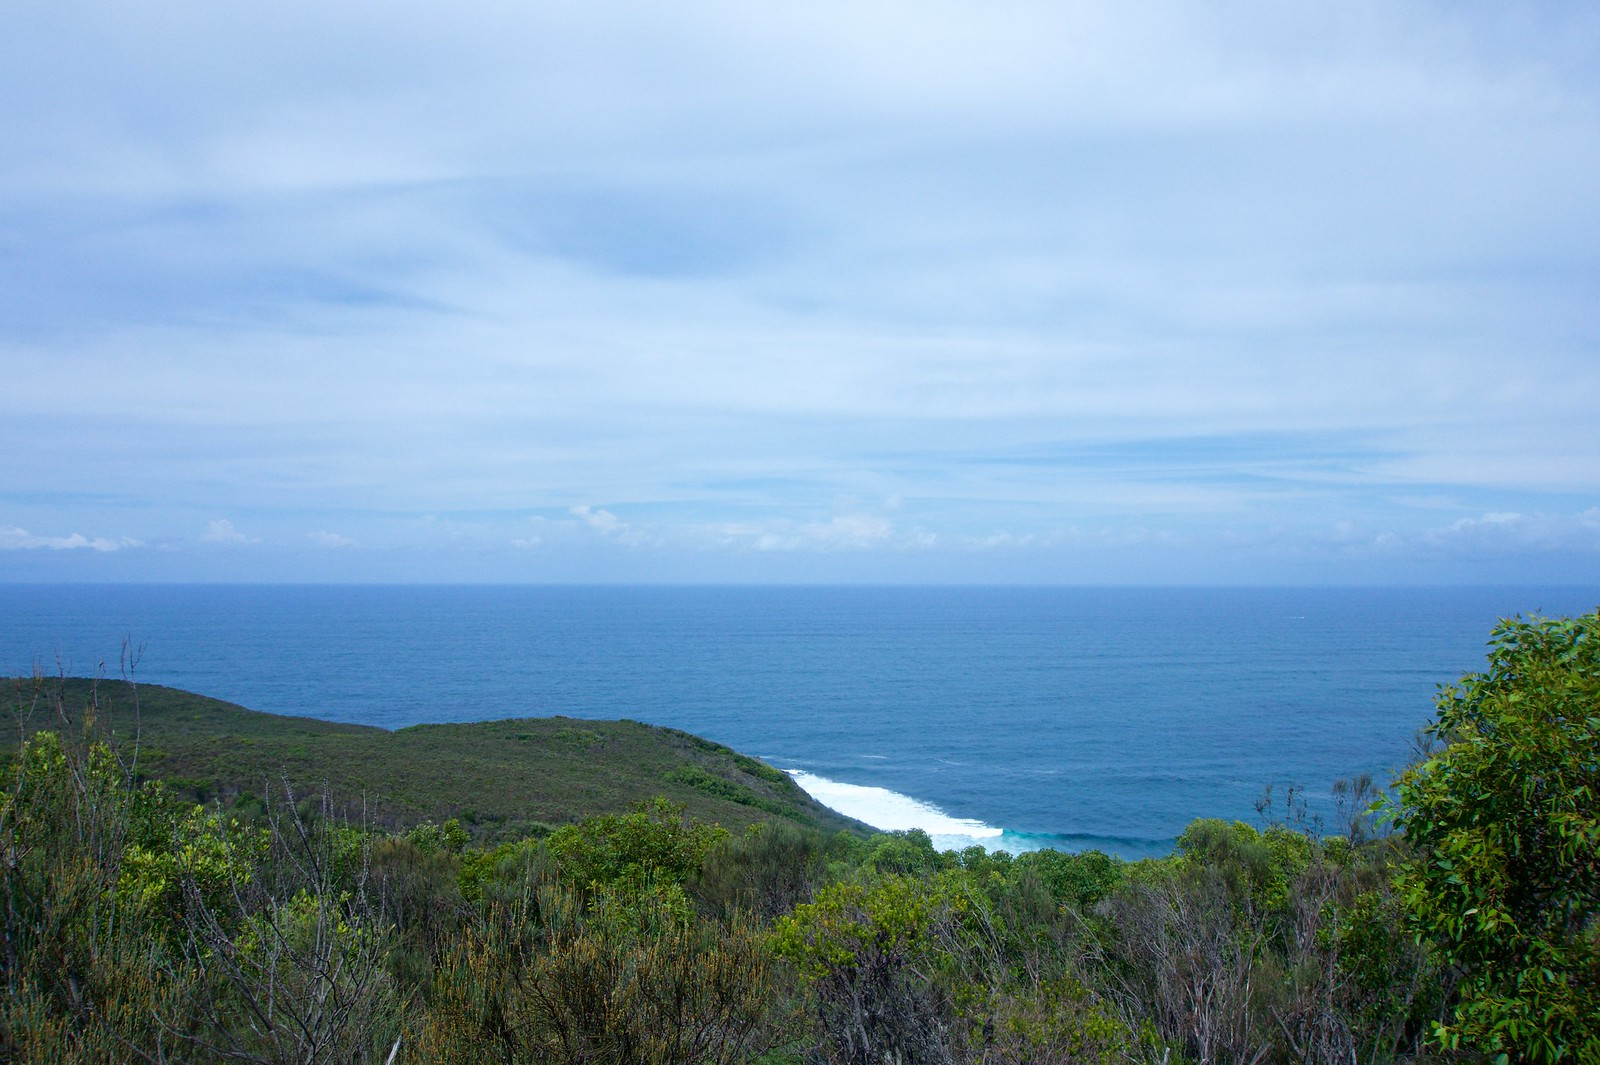 Pacific Ocean from Bouddi National Park